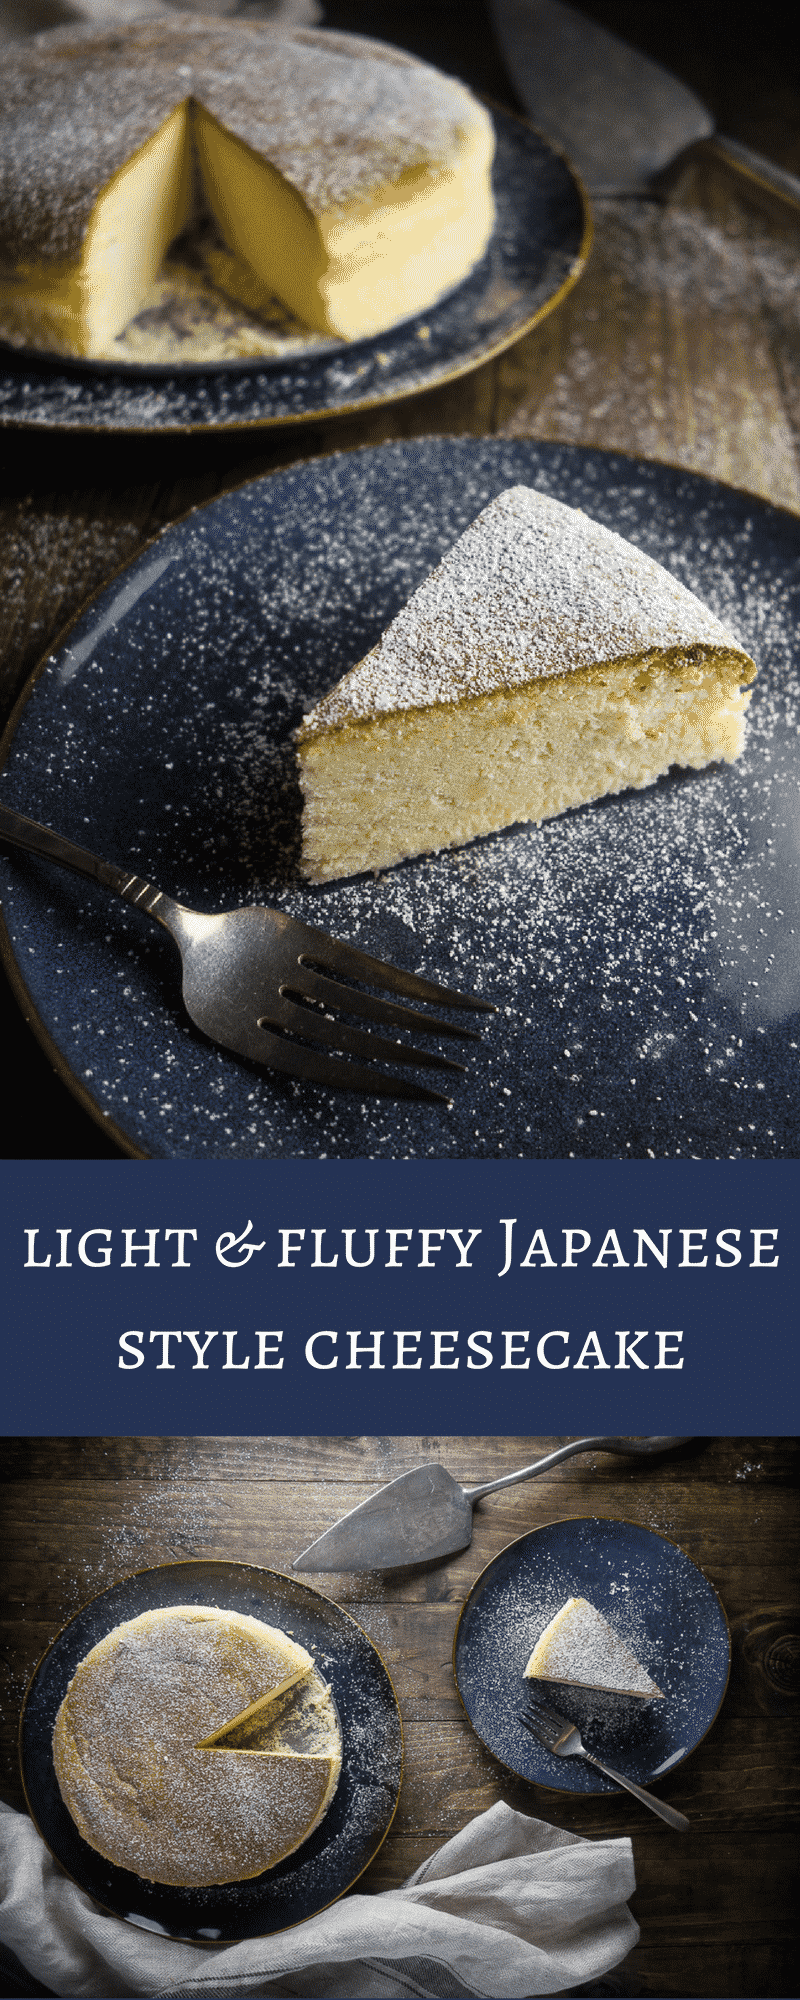 This light & fluffy Japanese style cheesecake (or soufflé cheesecake) will totally melt in your mouth - perfect for that cheesecake lover in your life!japanese cheesecake recipe | soft fluffy Japanese cheesecake | Japanese desserts | Japanese recipes | soufflé cheesecake | airy Japanese cheesecake | Japanese cotton cheesecake | creamy Japanese cheesecake | best cheesecake